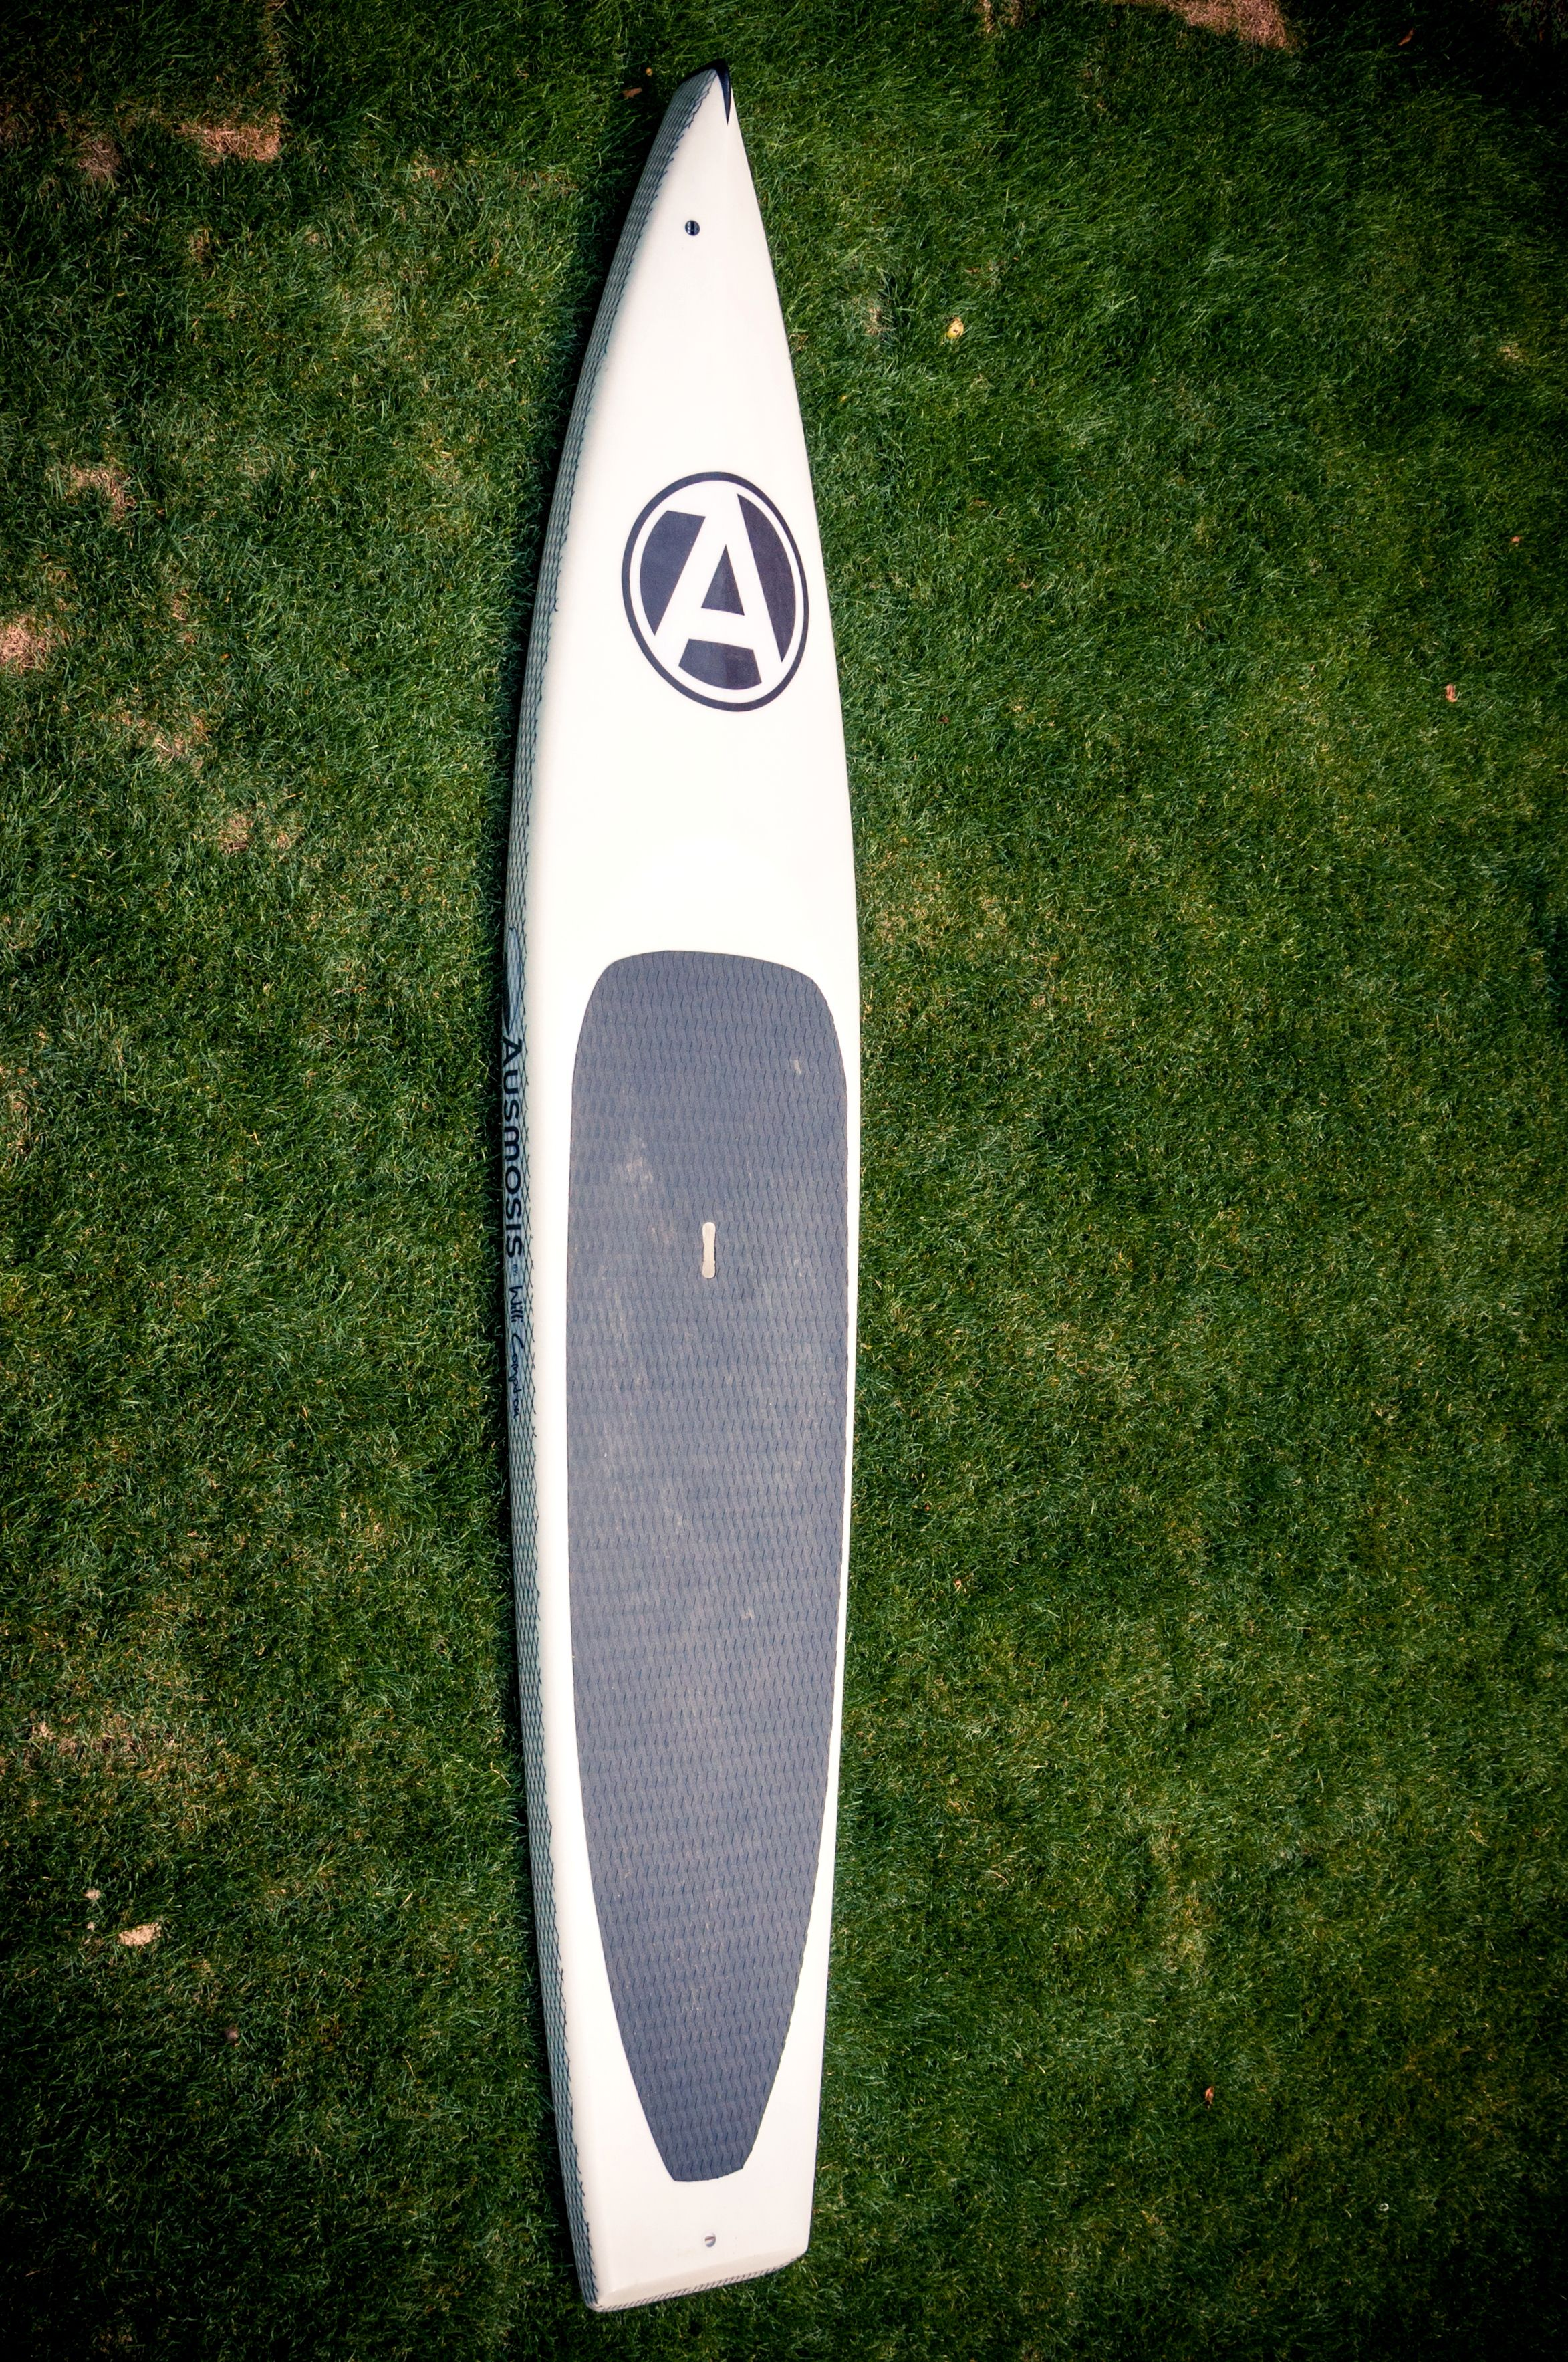 Race board 12'6'' Carbon fiber Victor Net Ultra light weight Race proven design by Darryl Austin  $1599.00